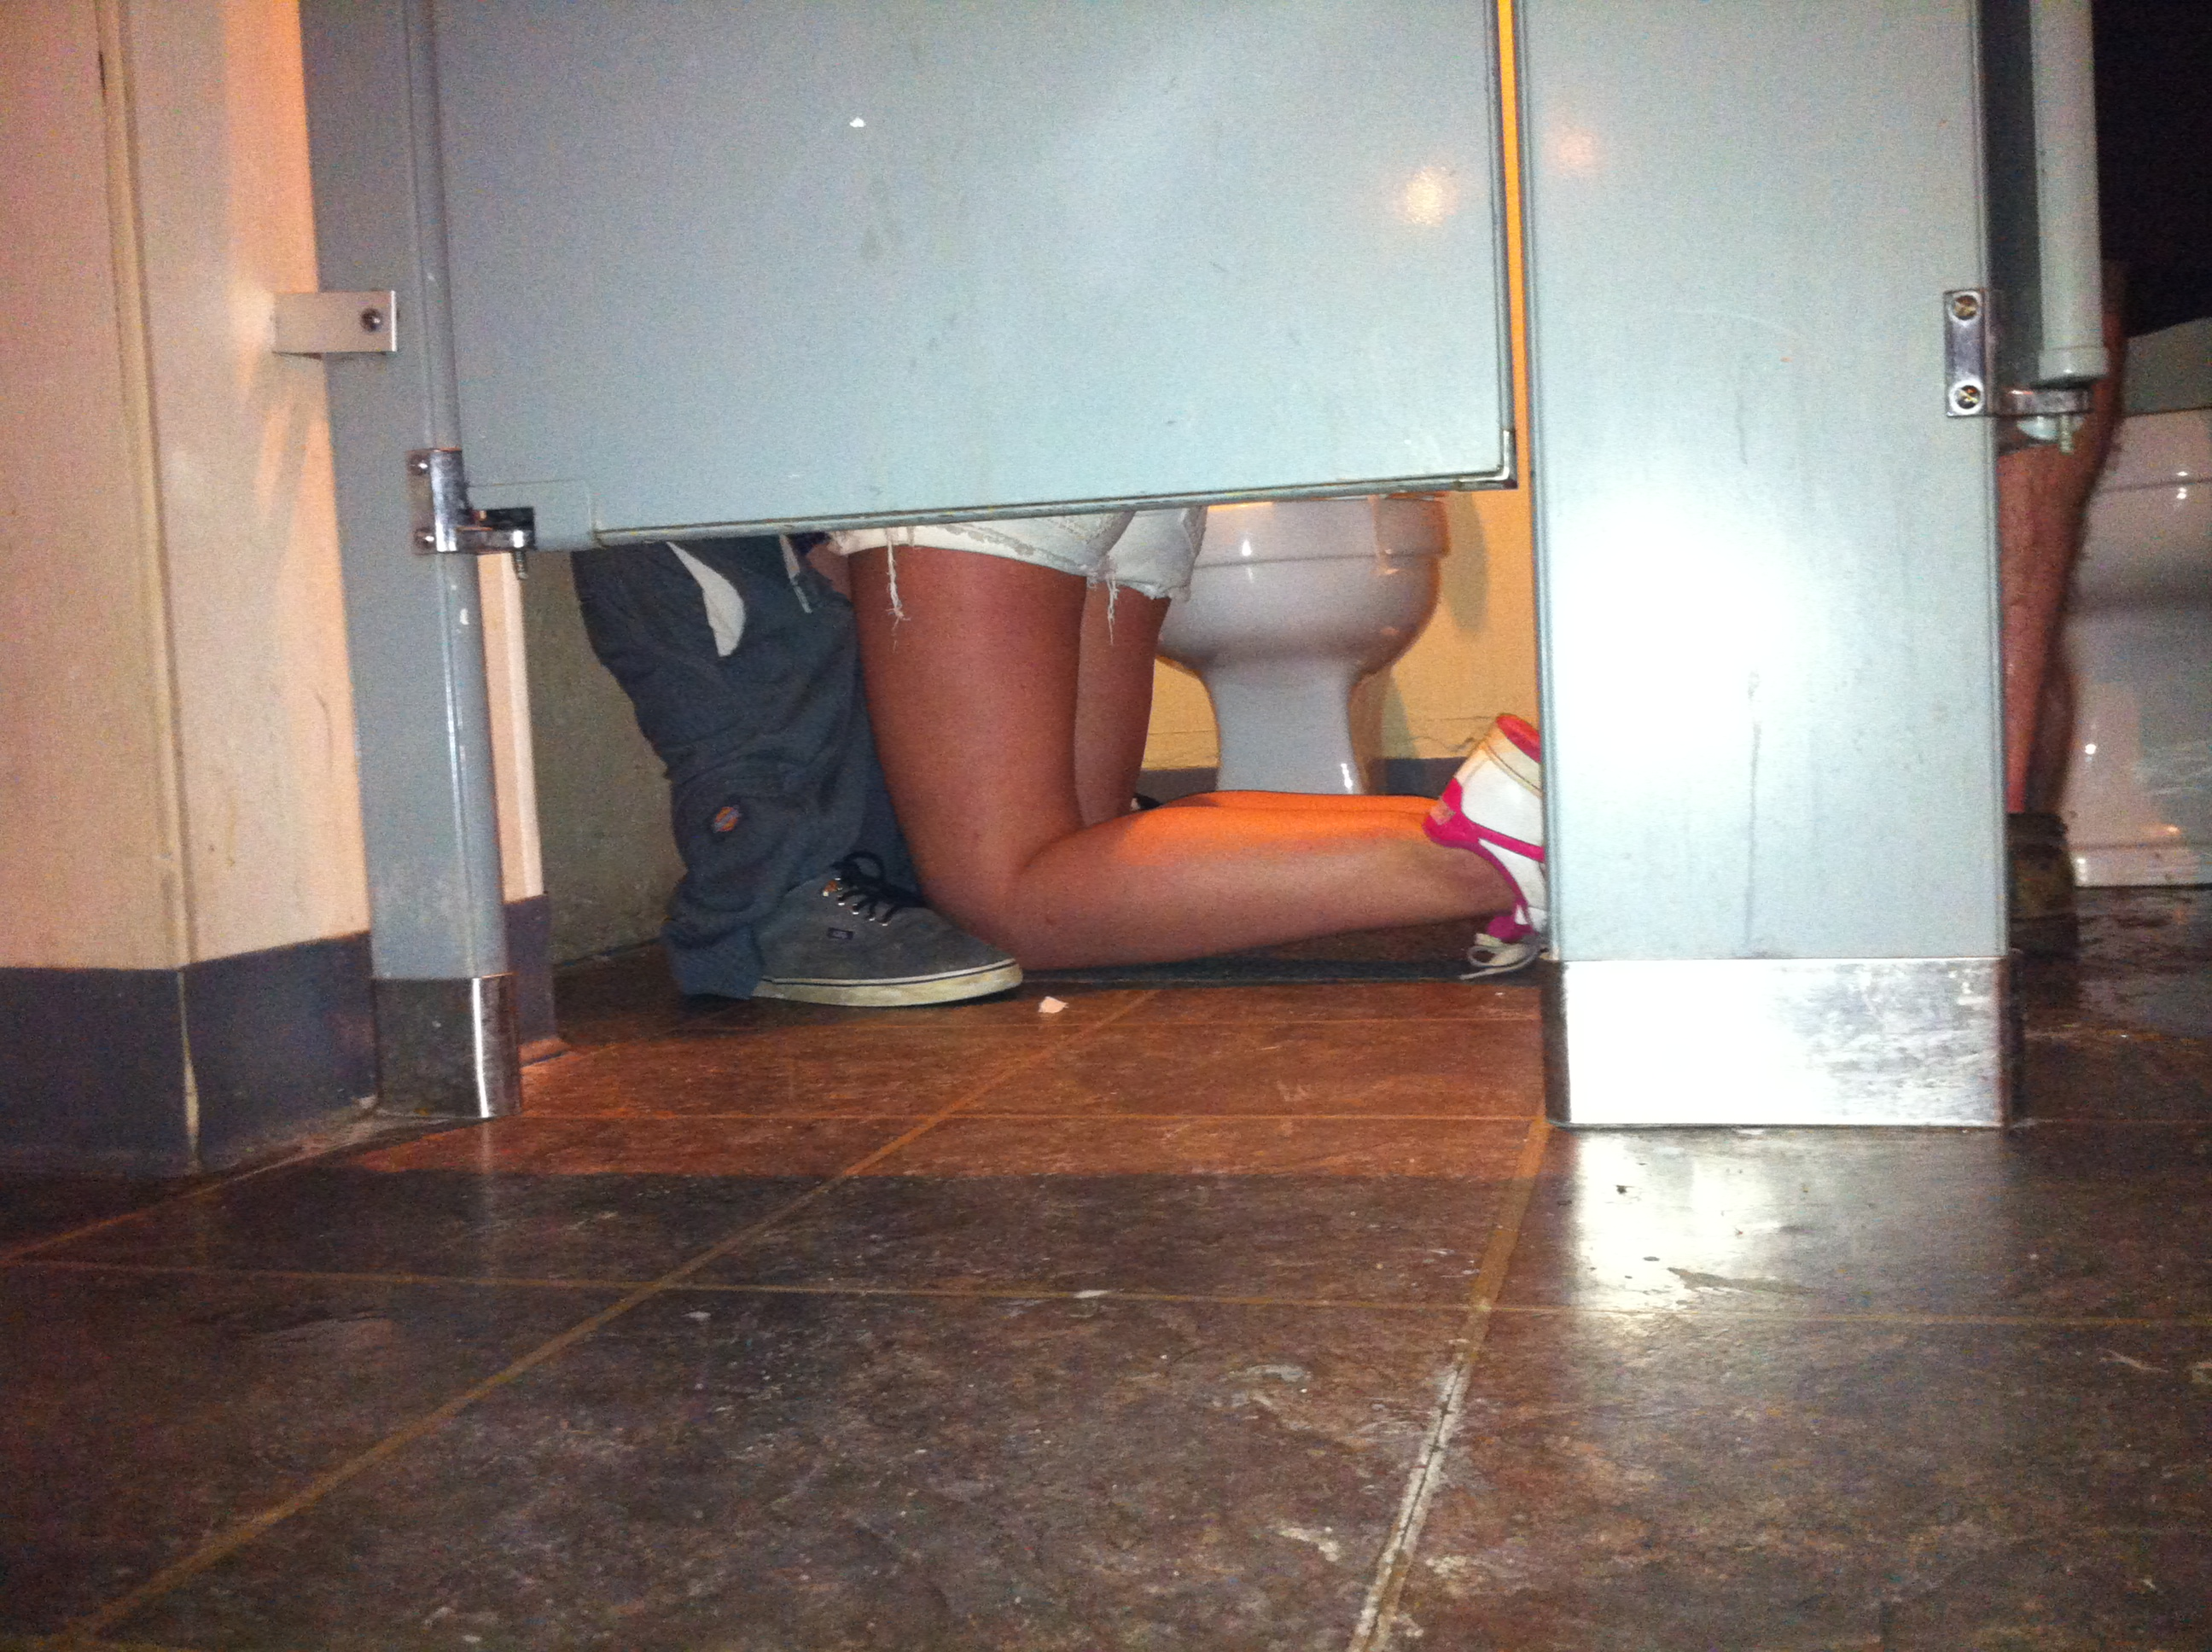 Sex in a bathroom stall photos 80